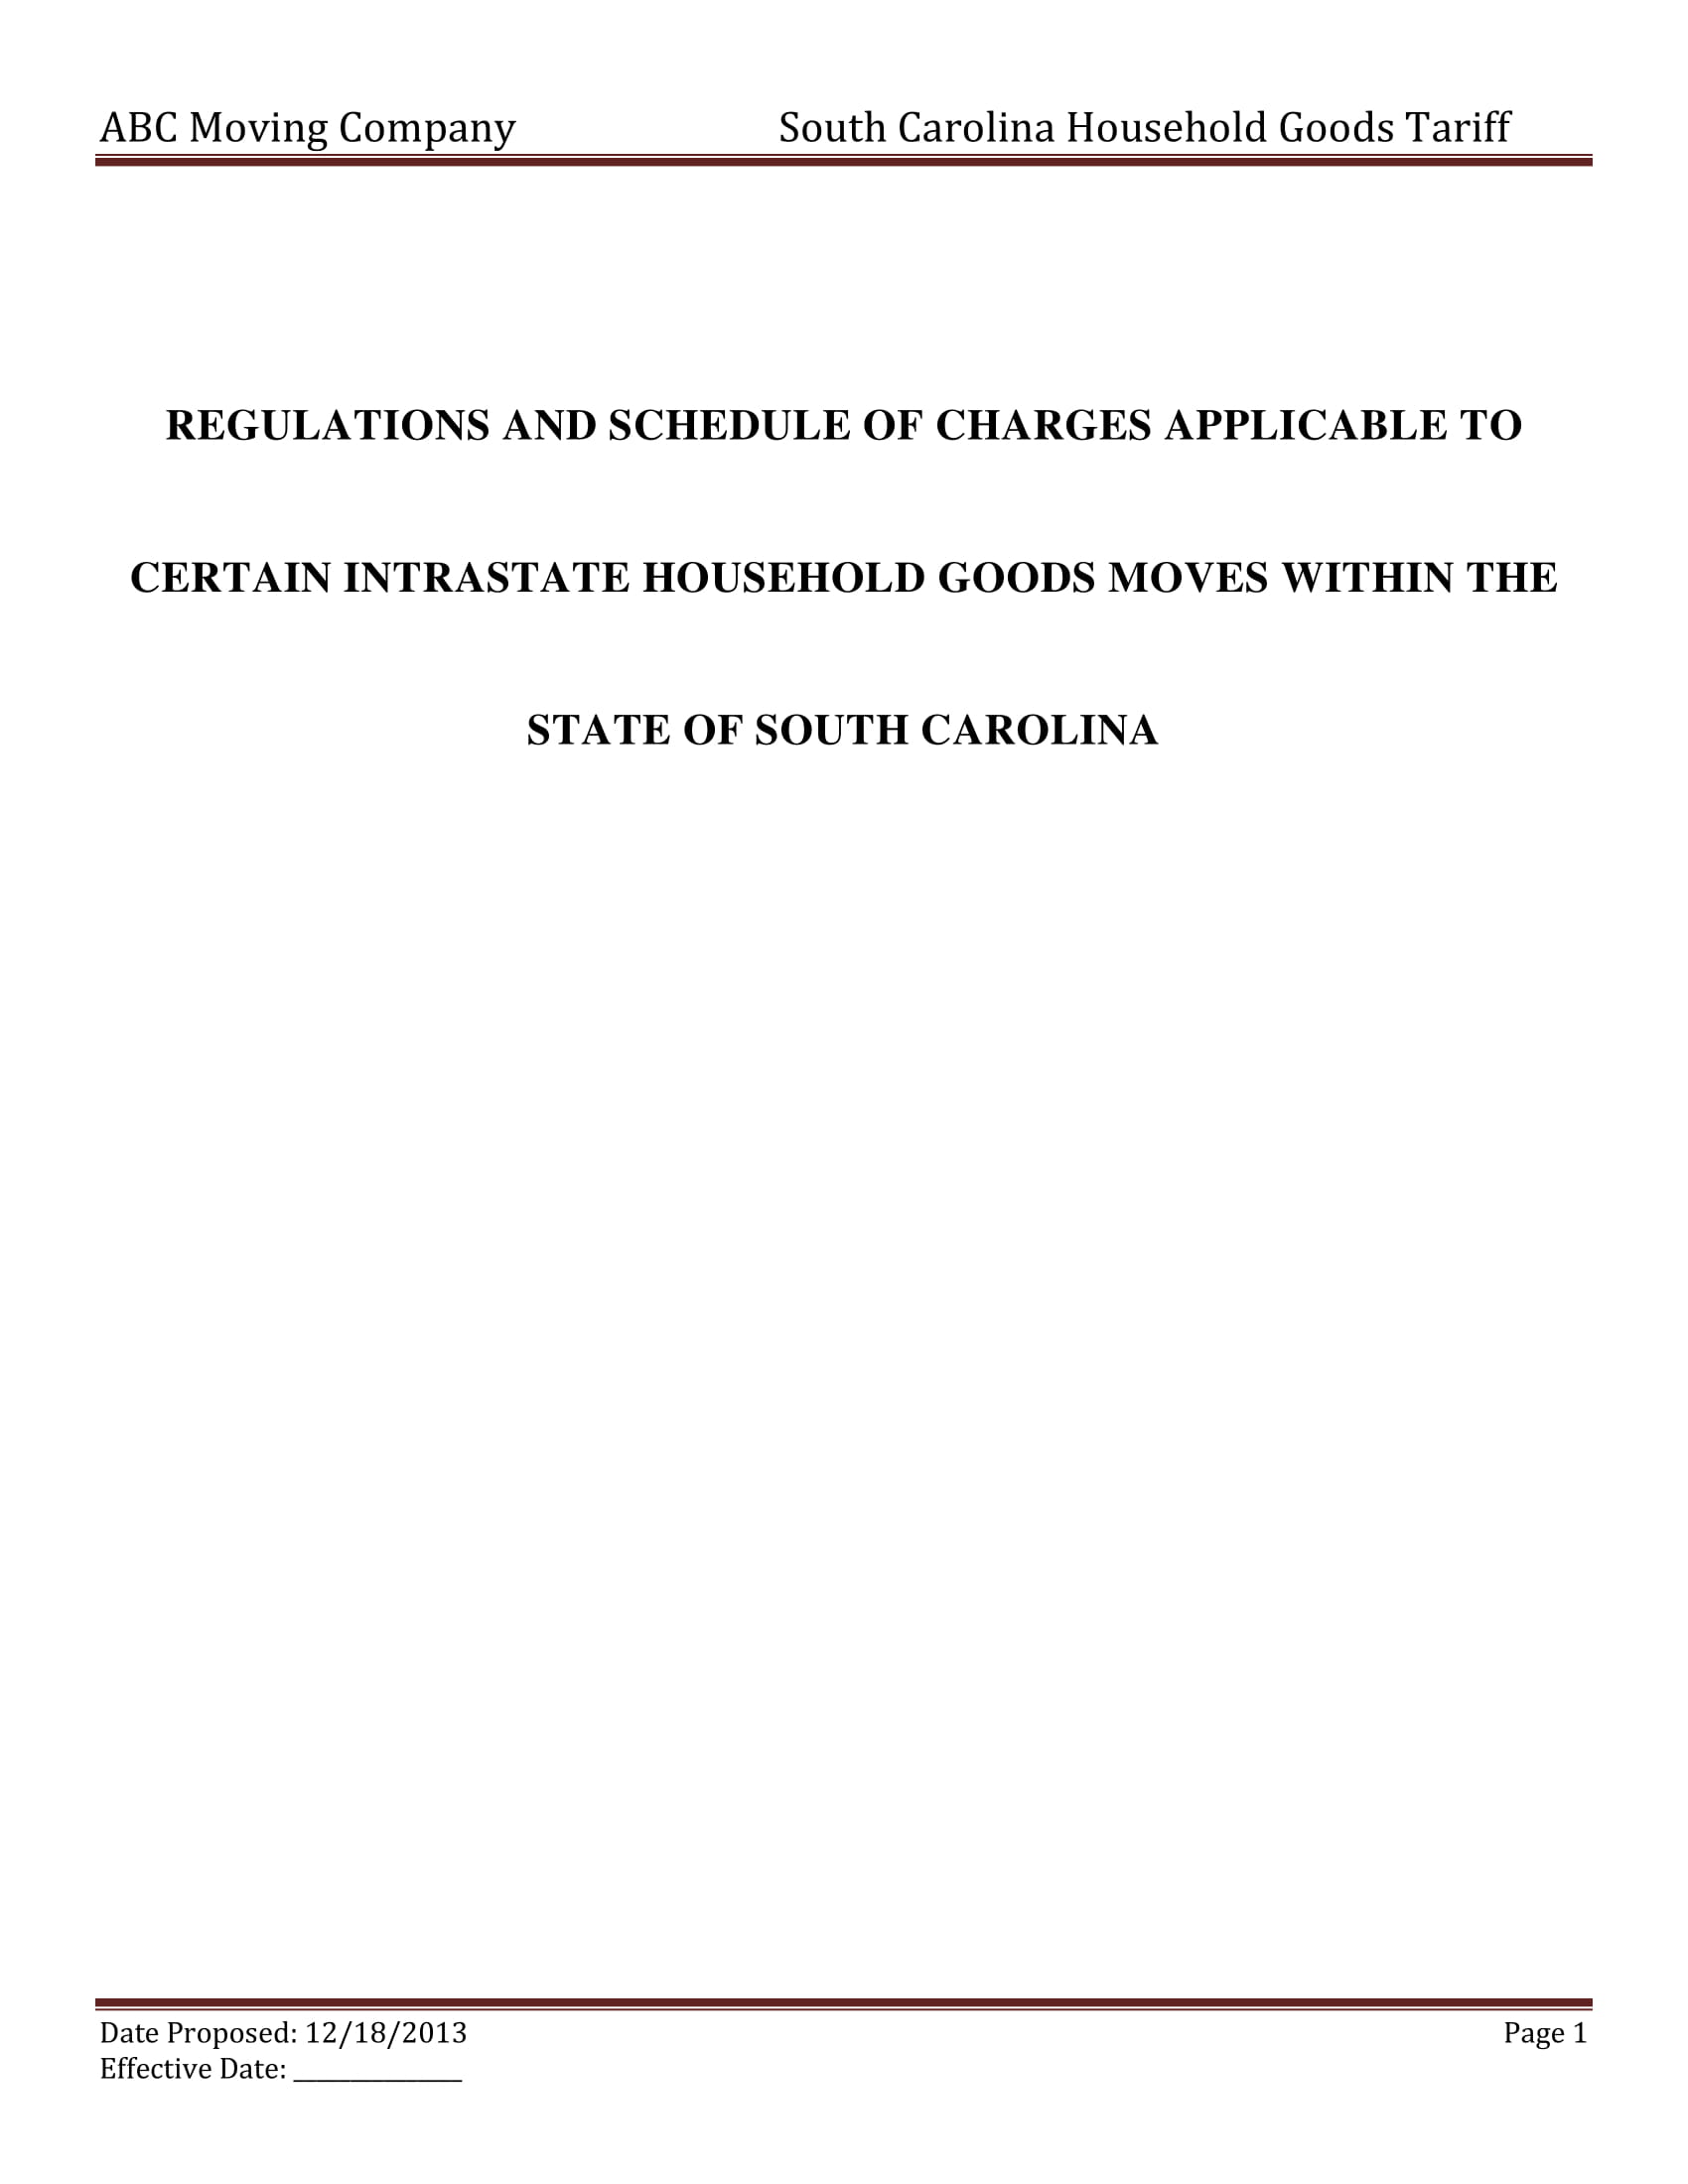 moving company contract regulations and schedule discussion template example 1